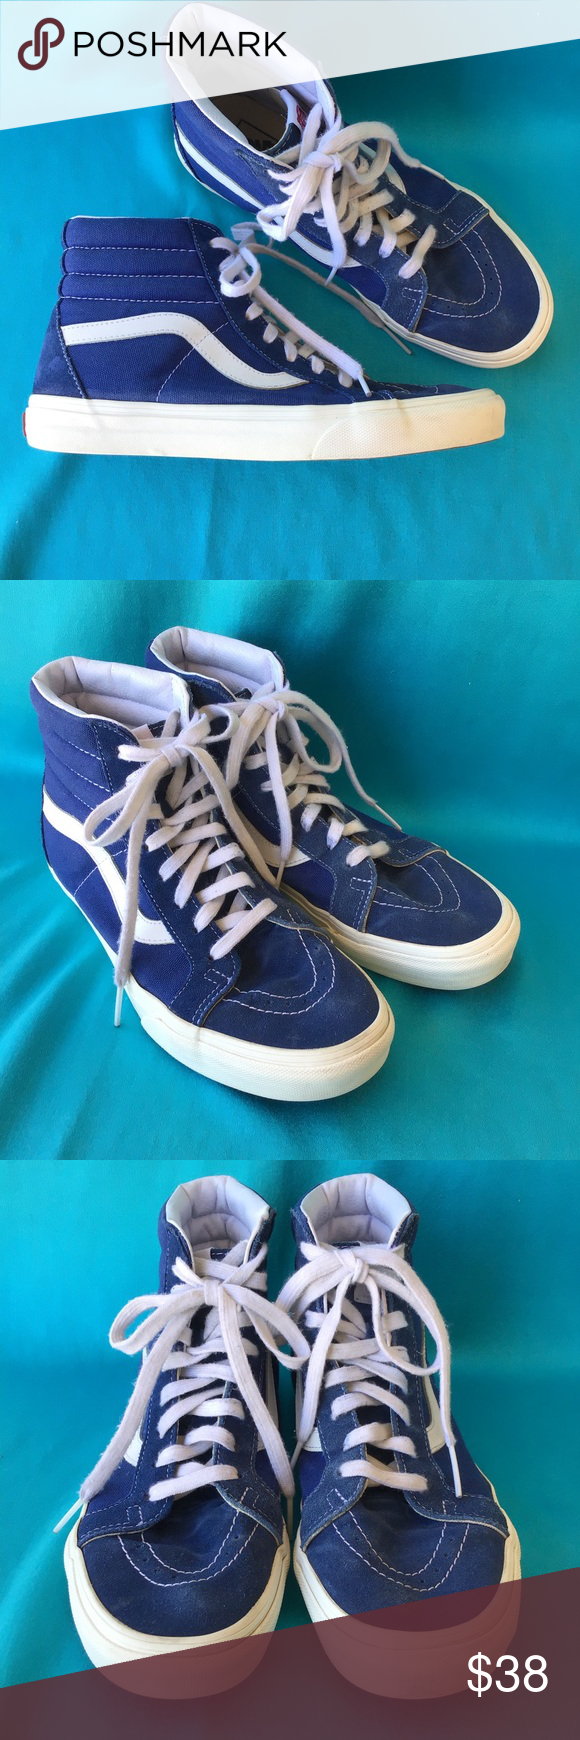 van s off the wall hi top sneakers sneakers top on off the wall id=92210